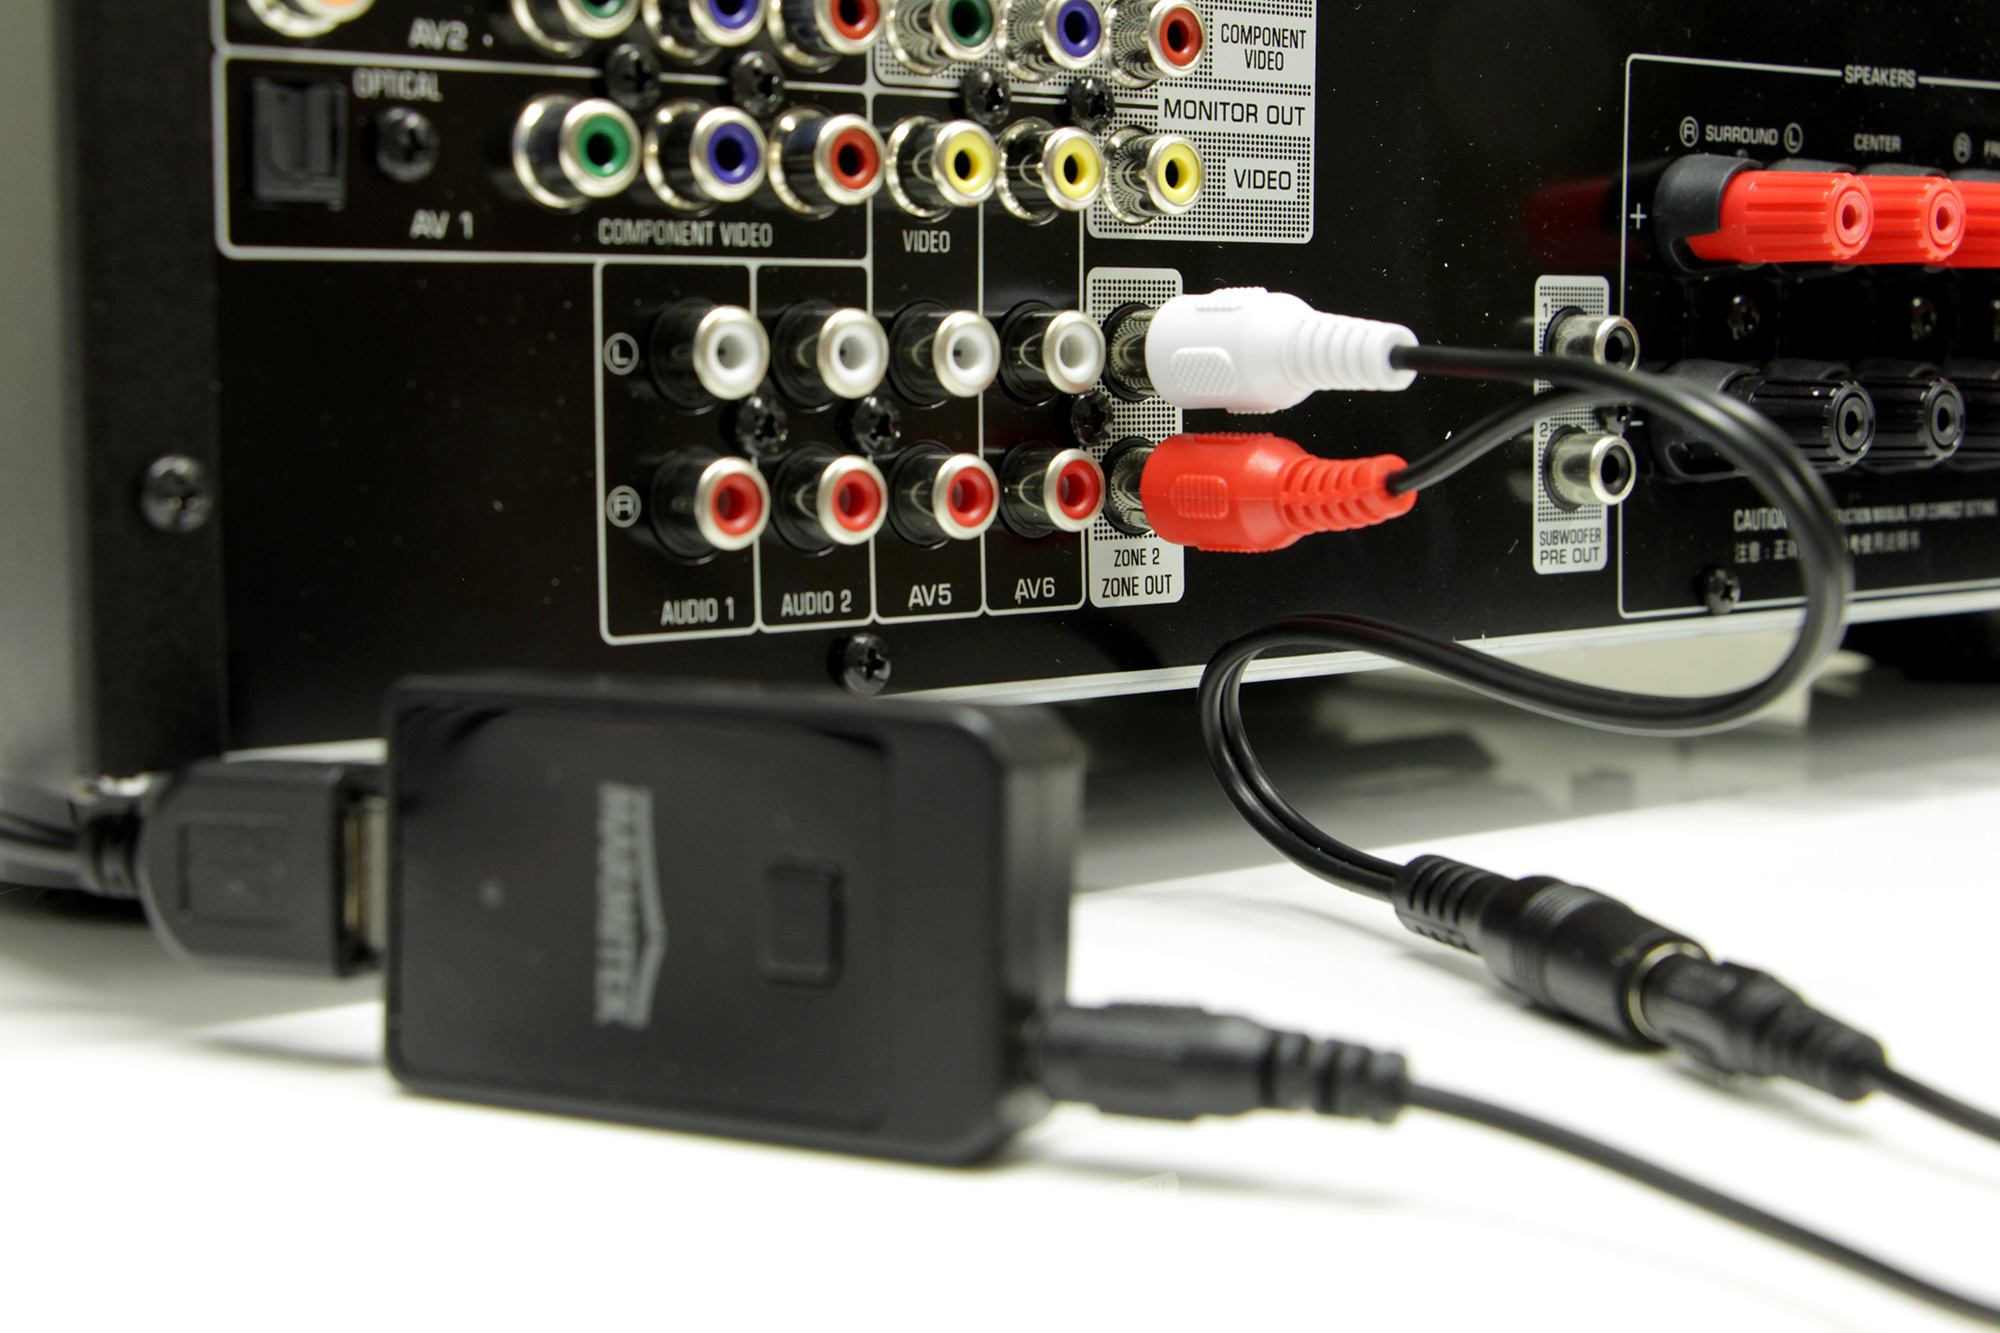 The Marmitek BoomBoom 50 Bluetooth Transmitter Connected To Zone 2 Output Of A Yamaha RX V679 AV Receiver